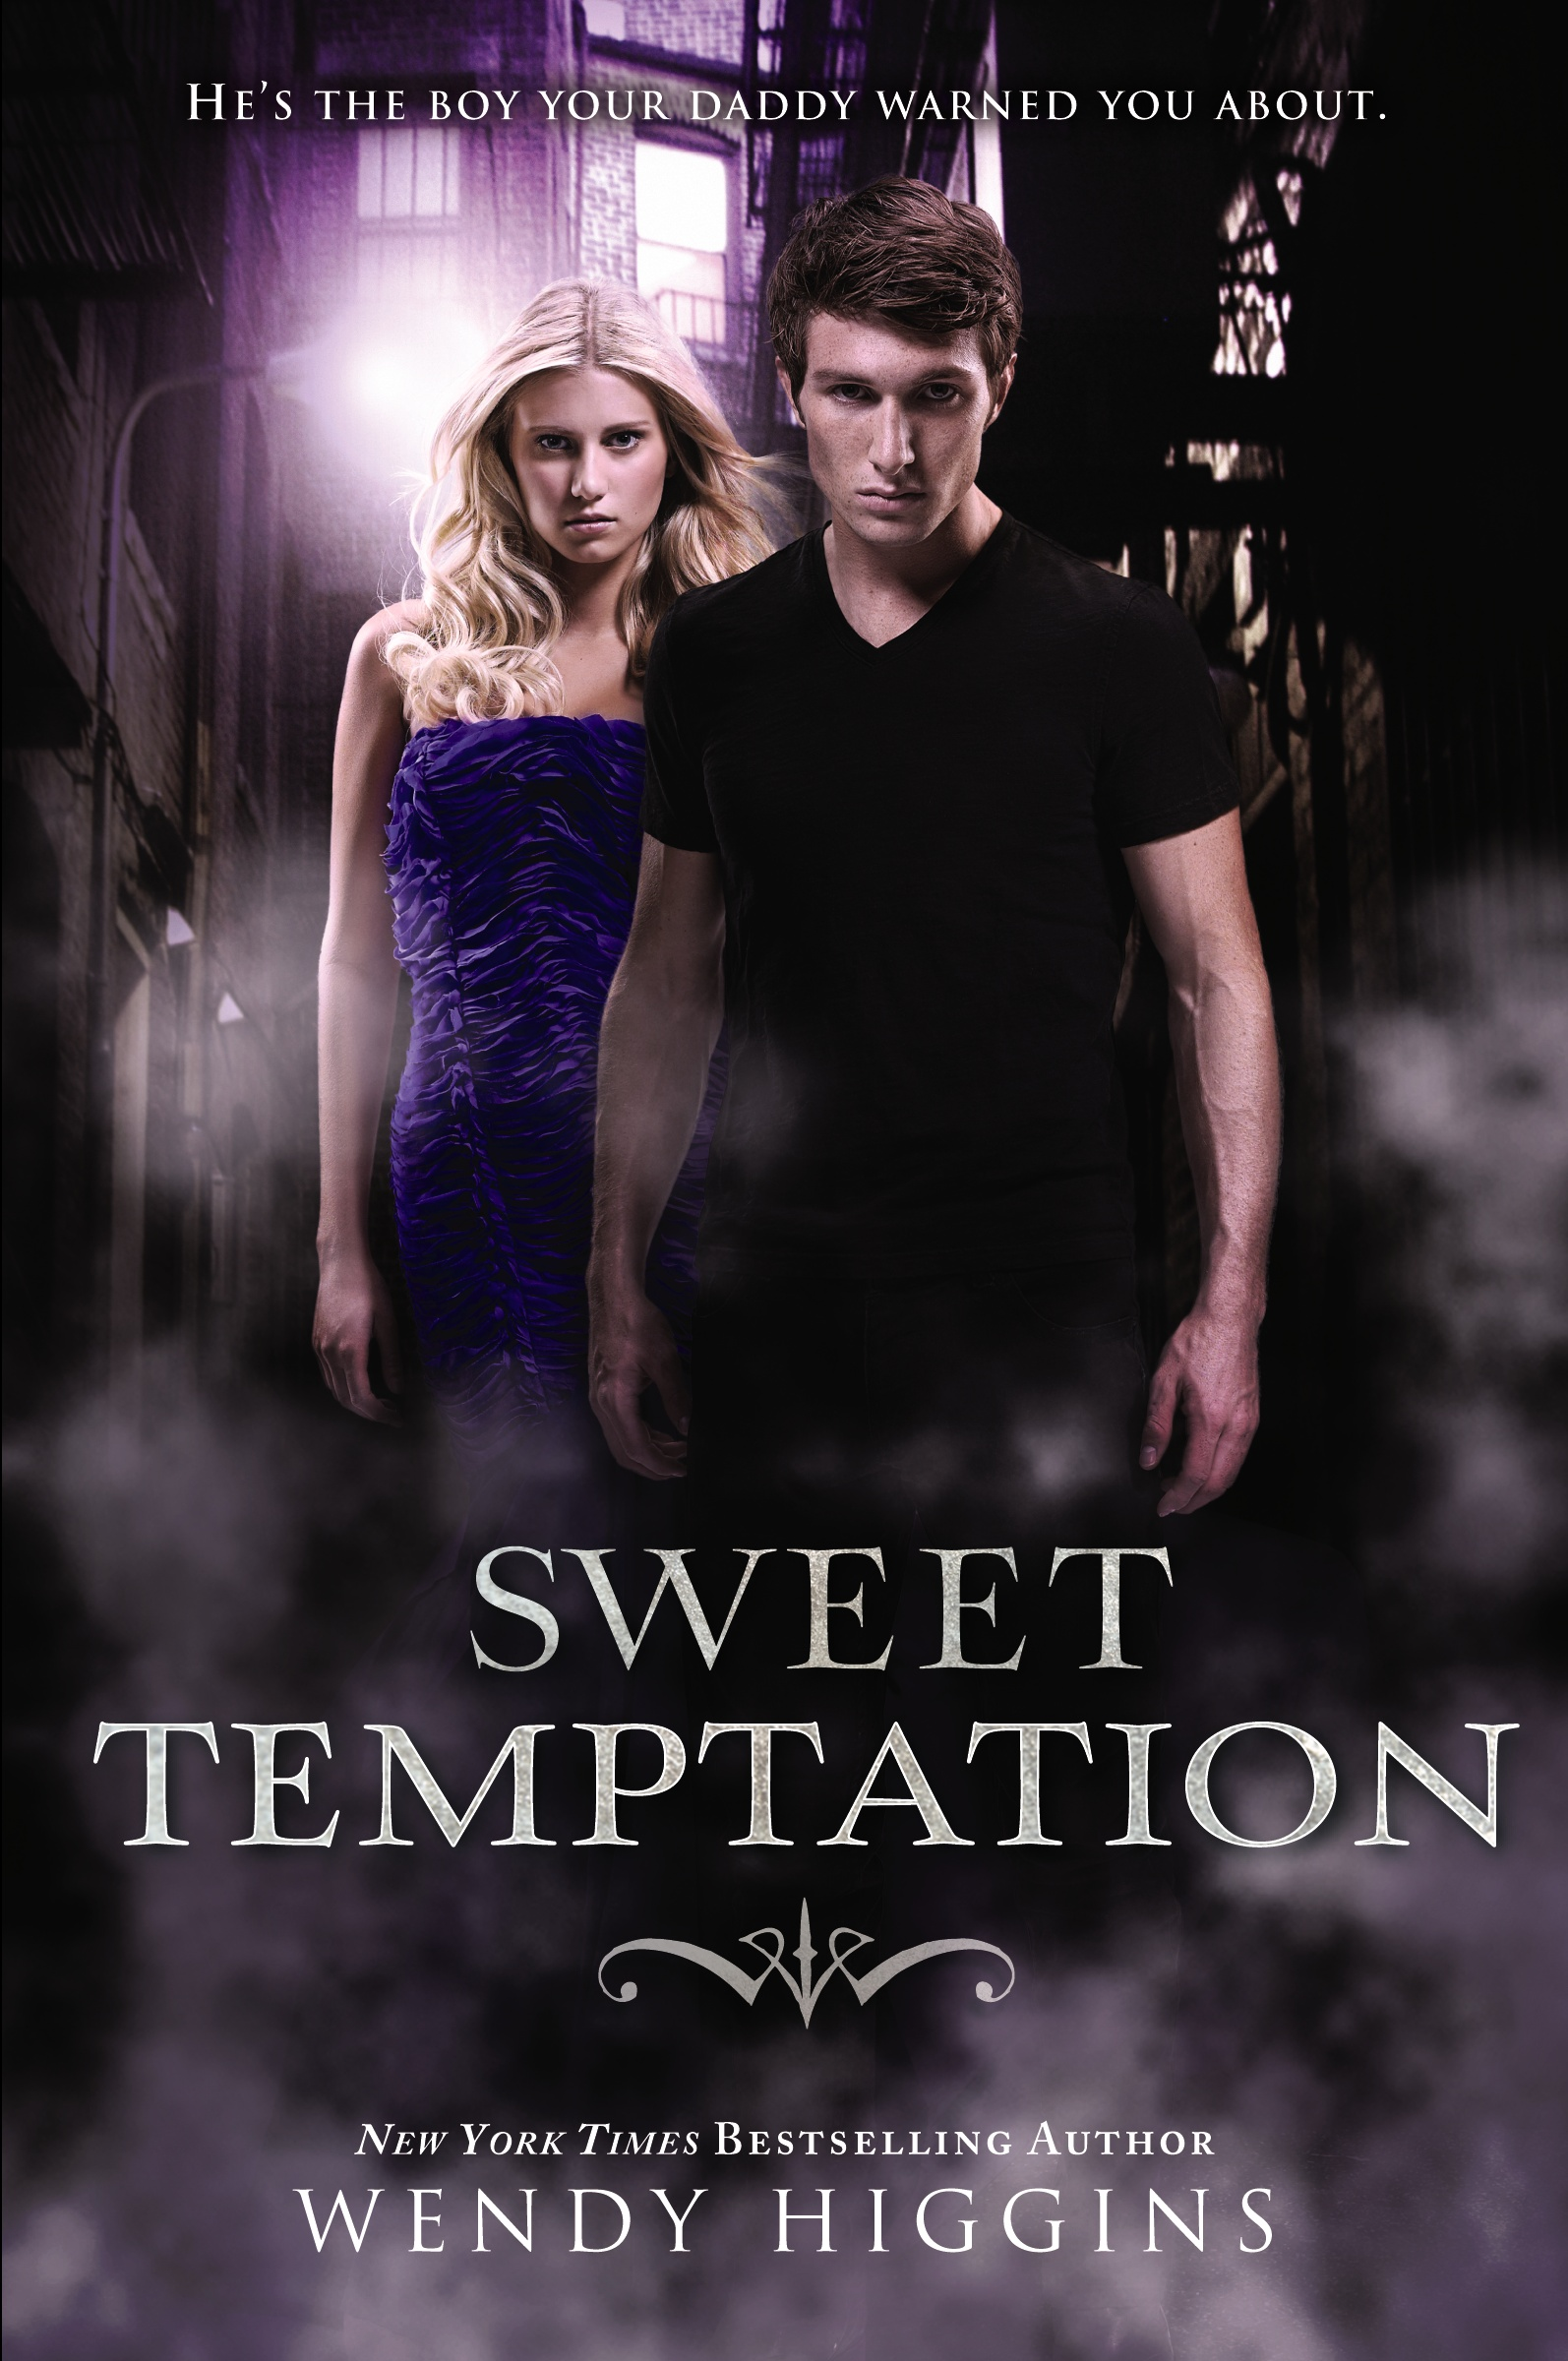 Sweet Temptation wendy higgins